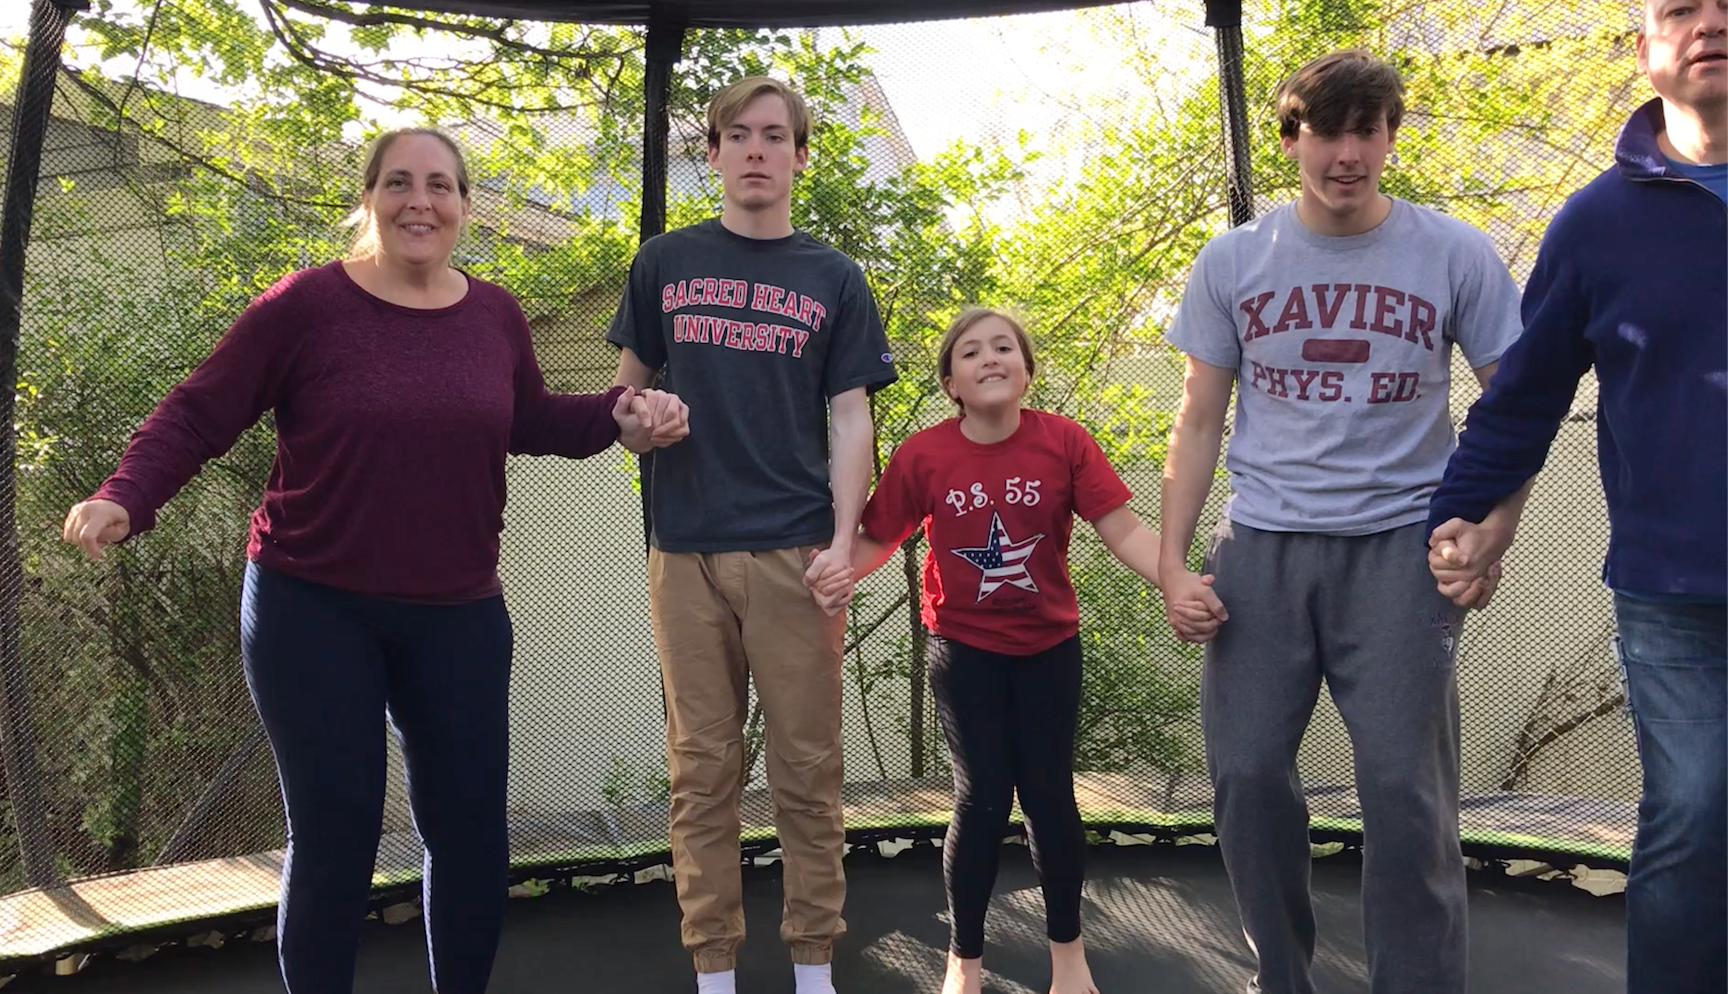 Here is a family of five jumping on their trampoline together and having fun!